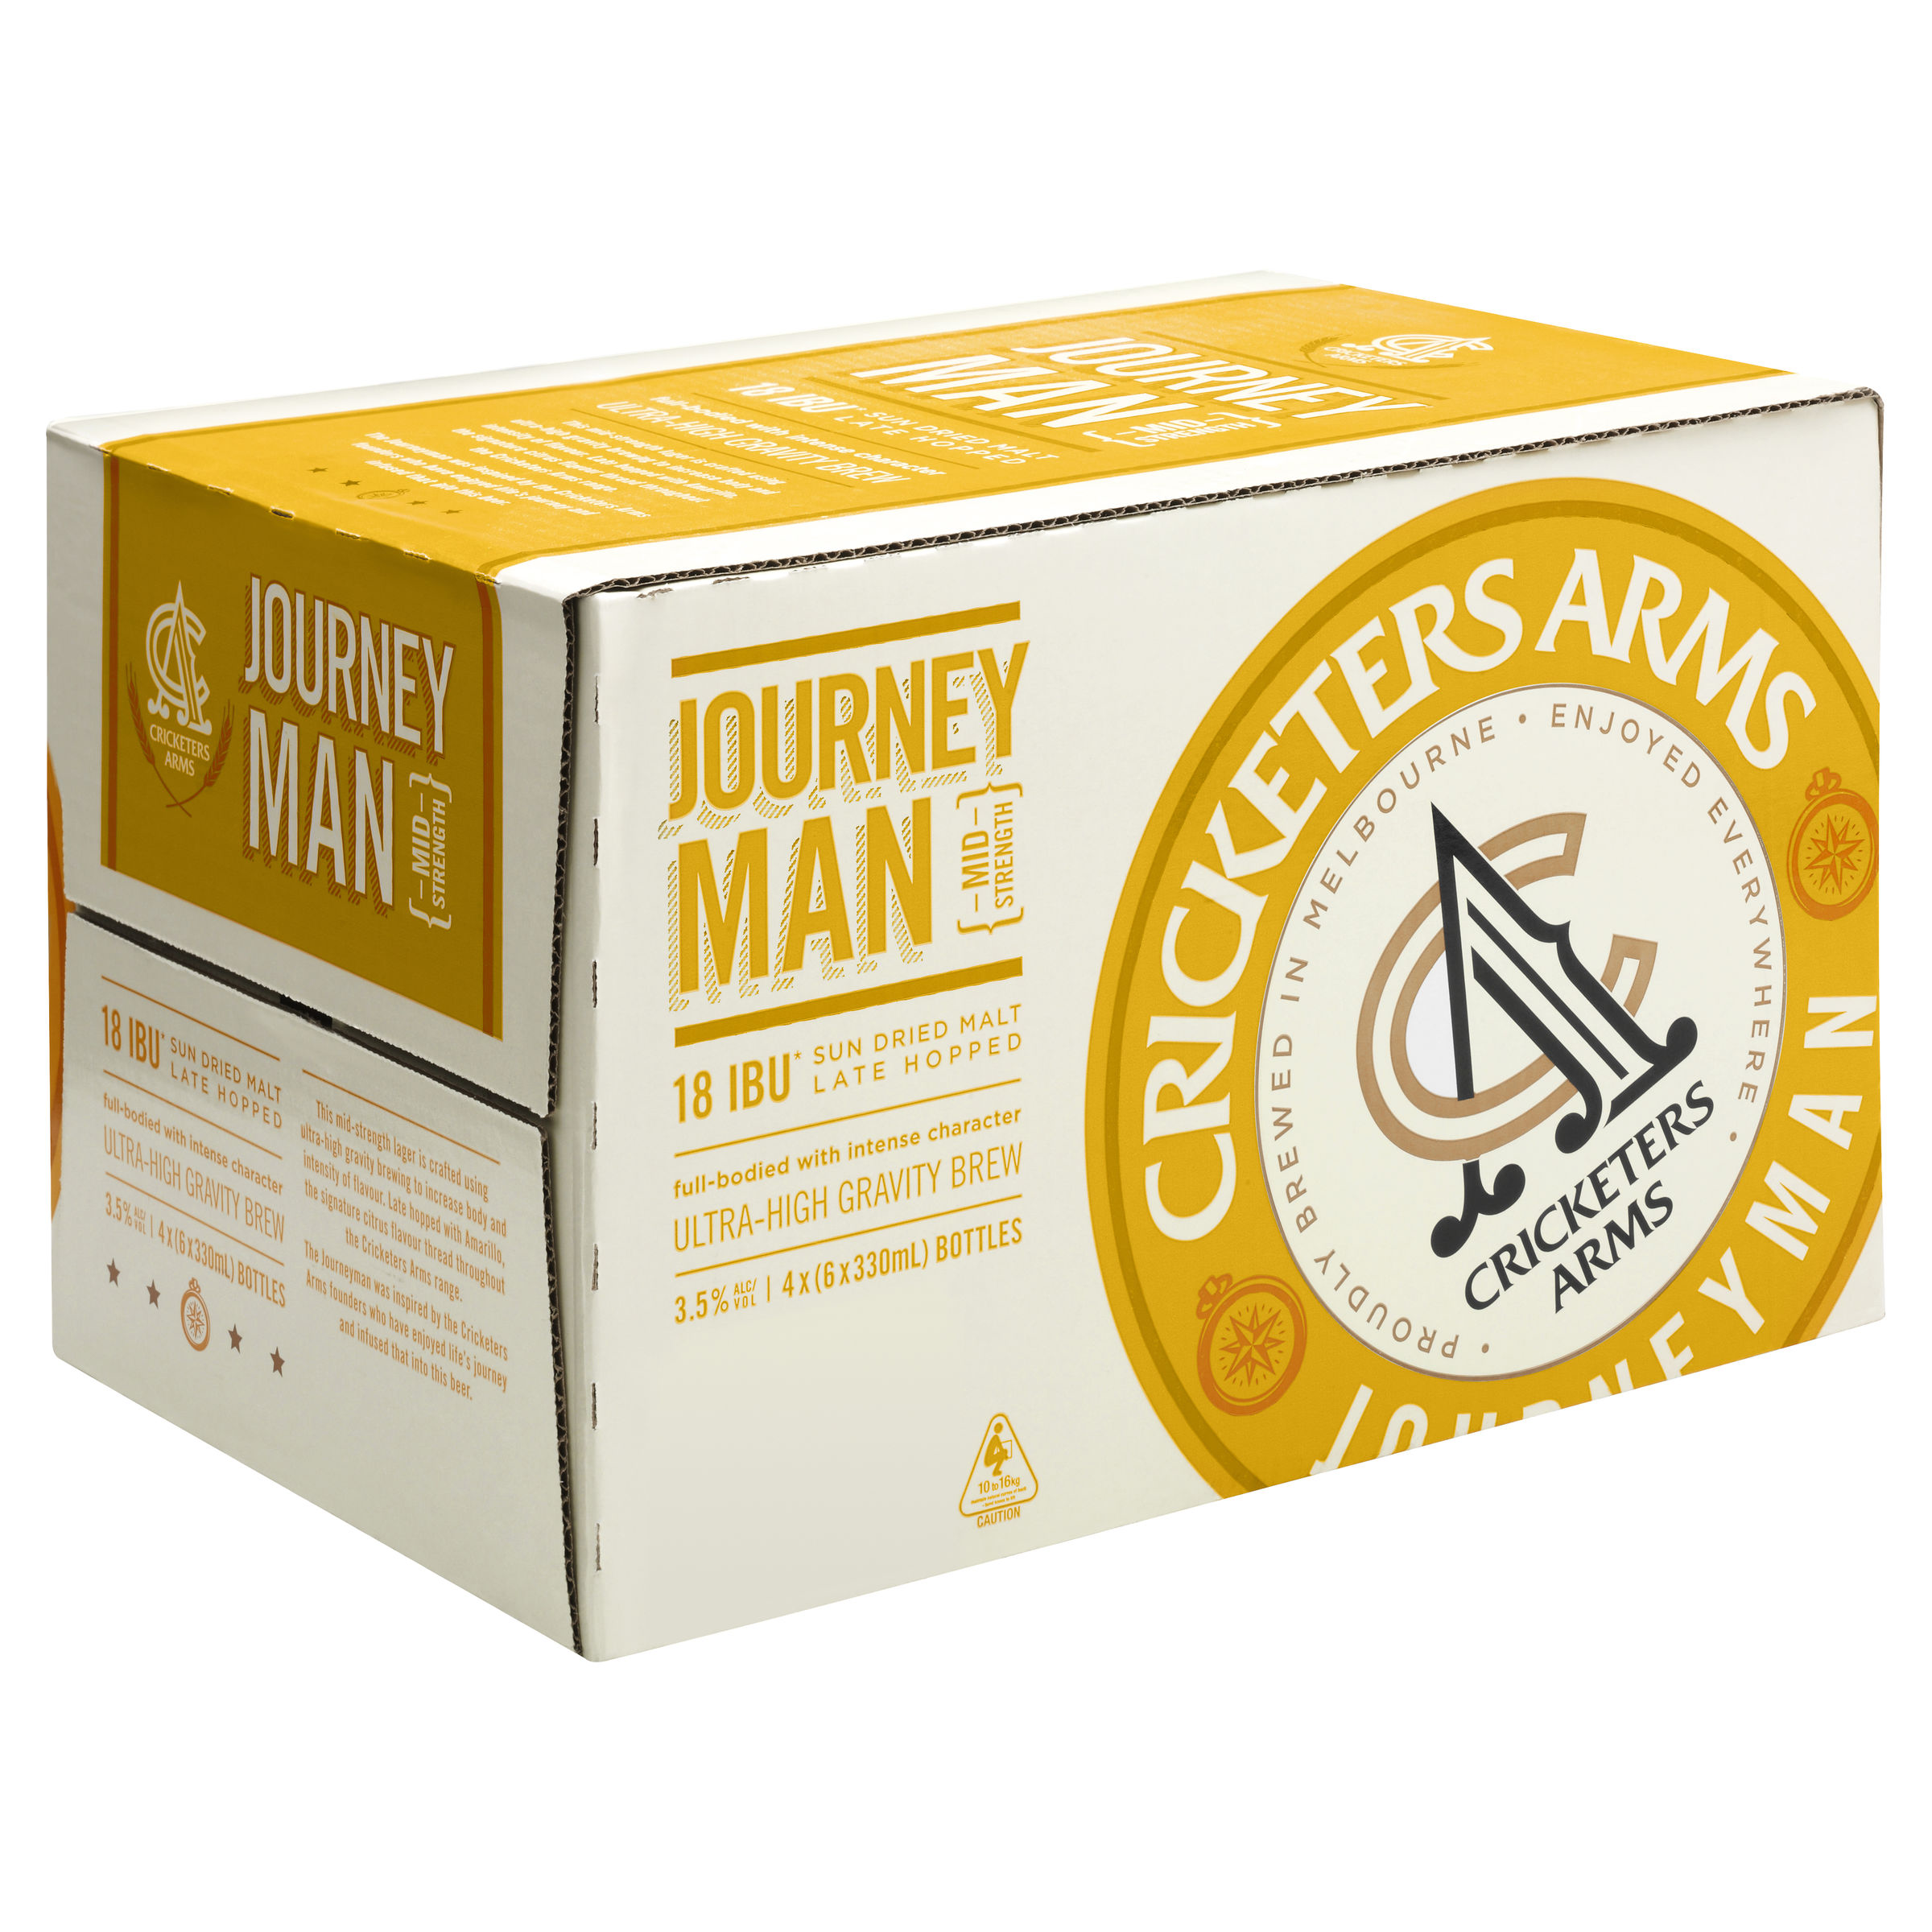 CRICKETERS ARMS JOURNEYMAN